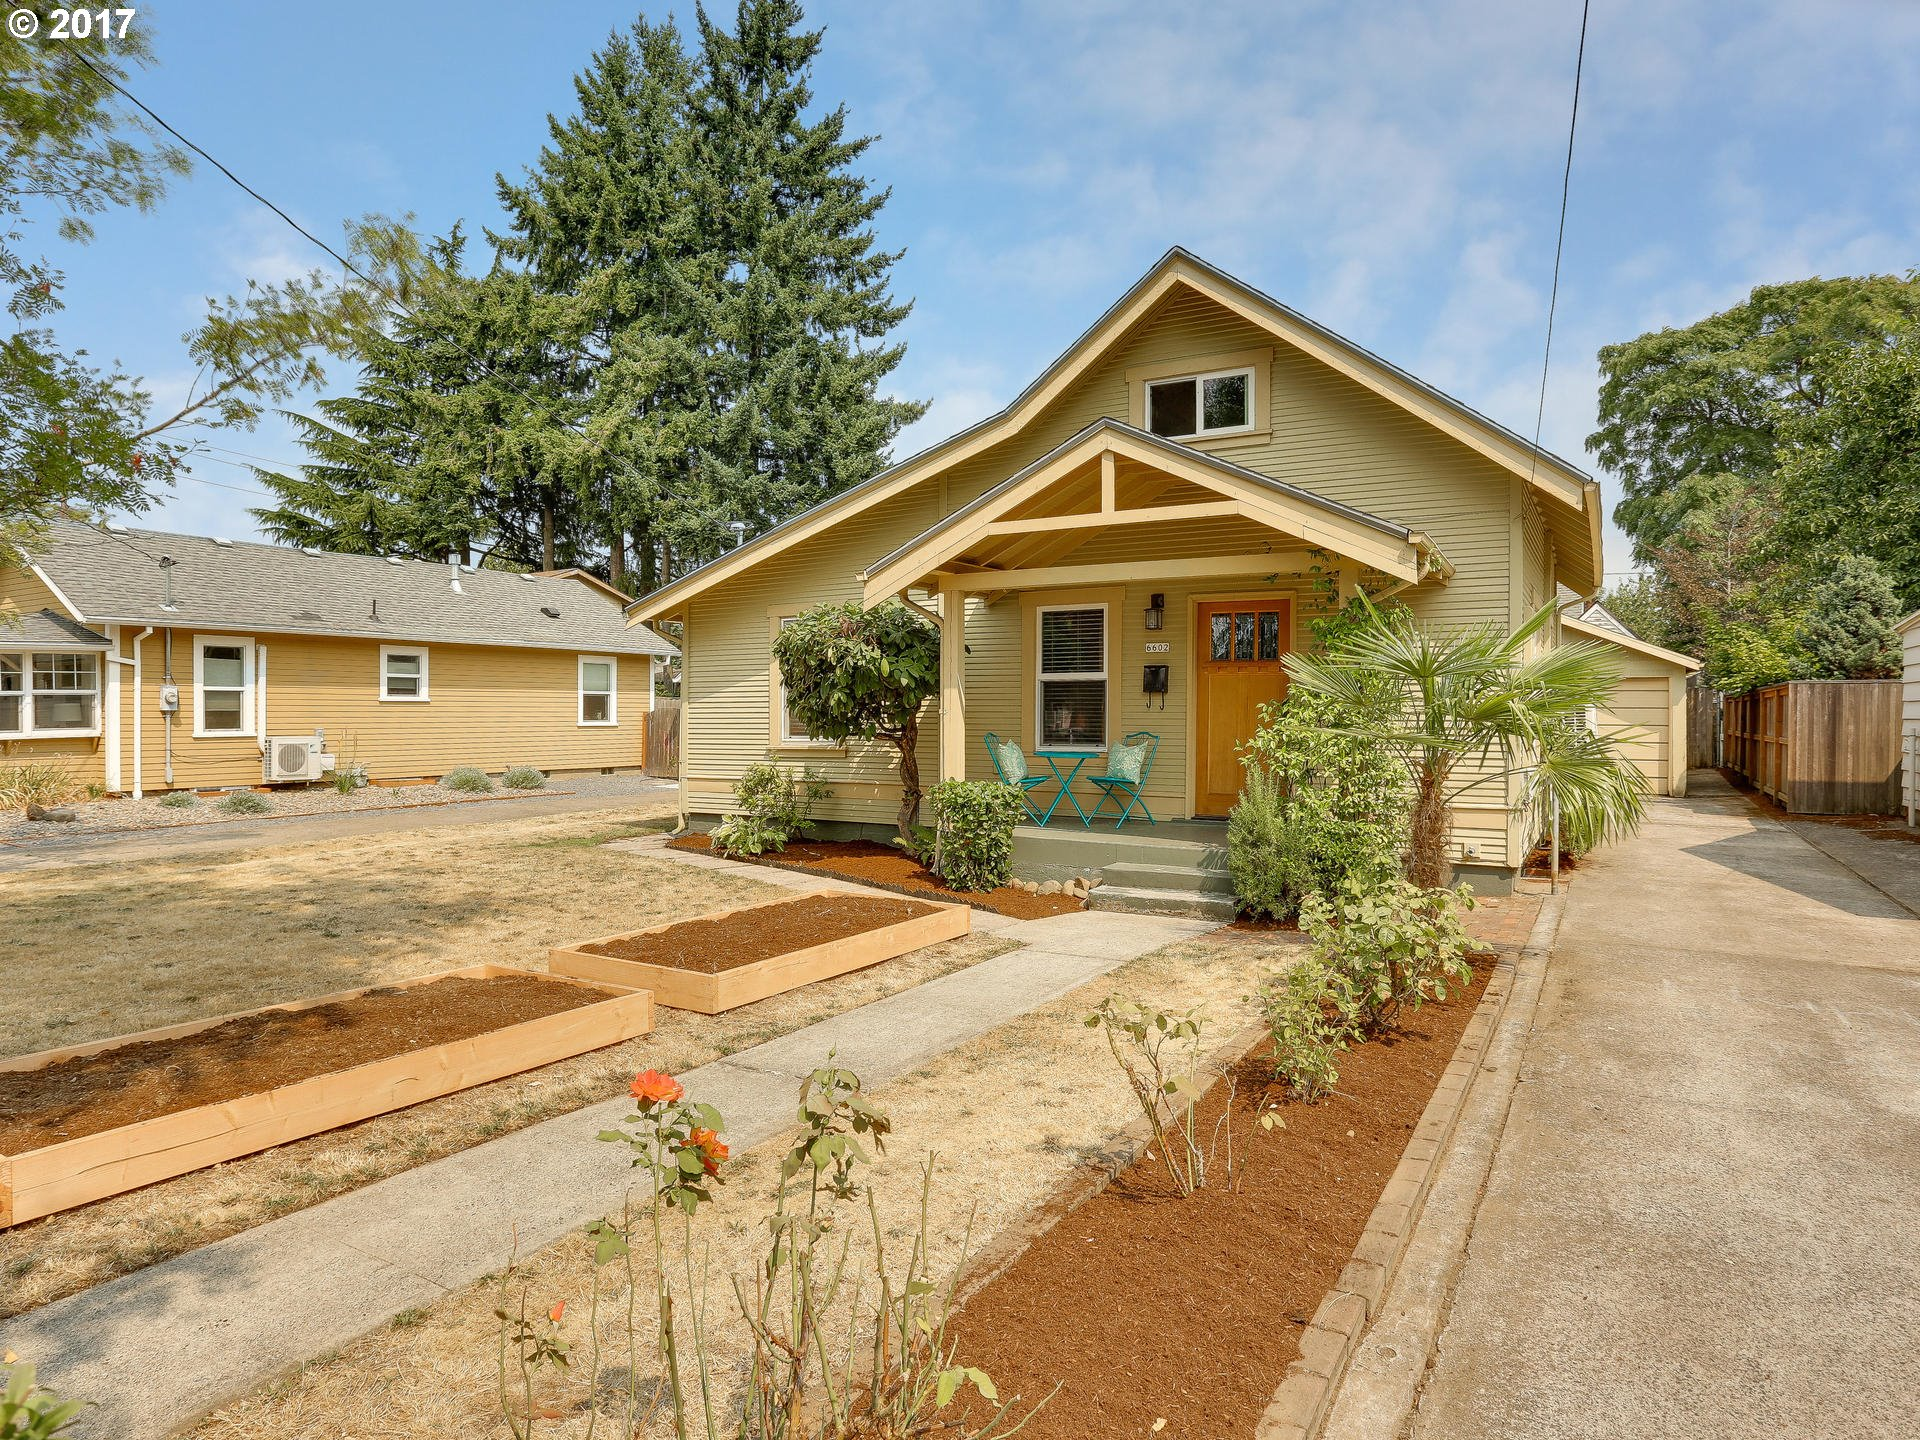 The Arbor Lodge sweet spot! Sunlit vintage charm, smart, efficient updates, big open kitchen, sunny yard w/raised beds + privacy, detached garage + lots of opportunity!